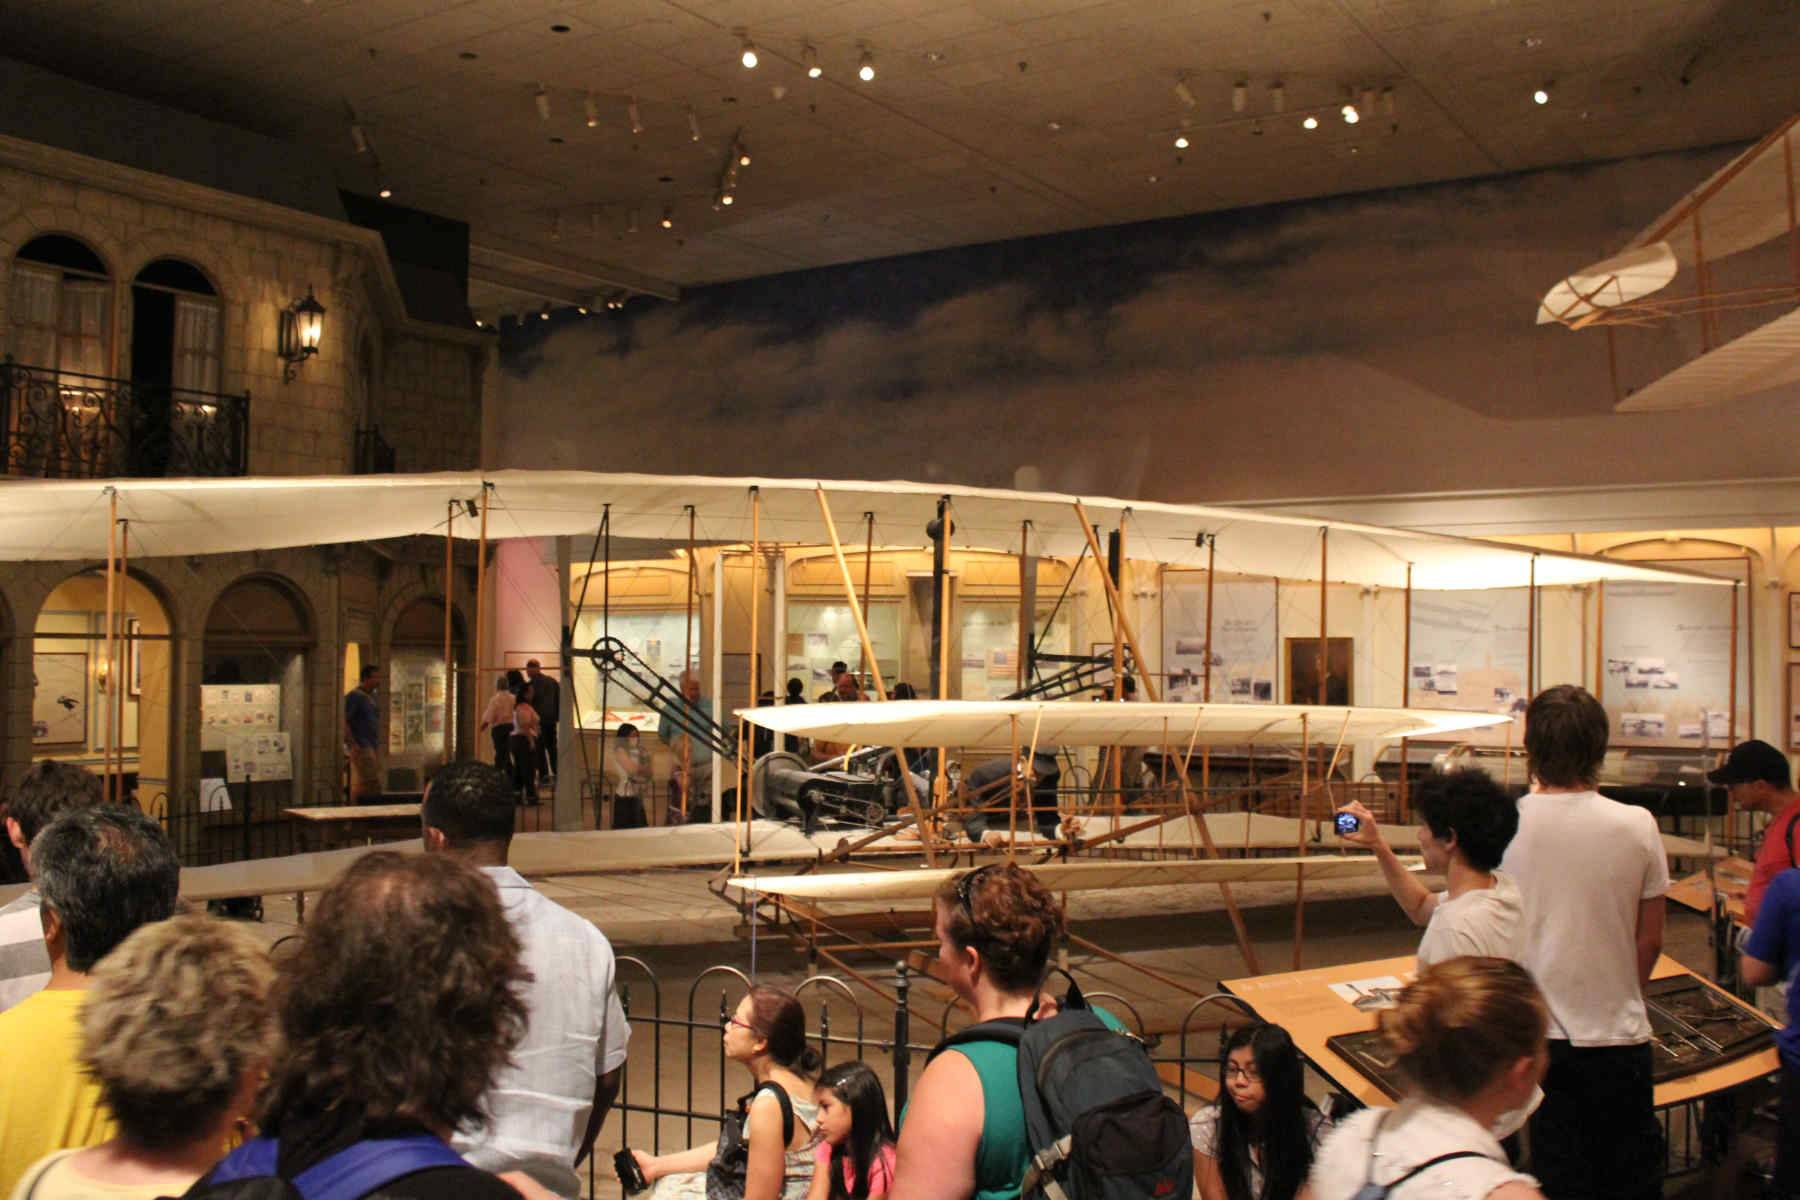 Alternative angle of the Wright Brother's Plane